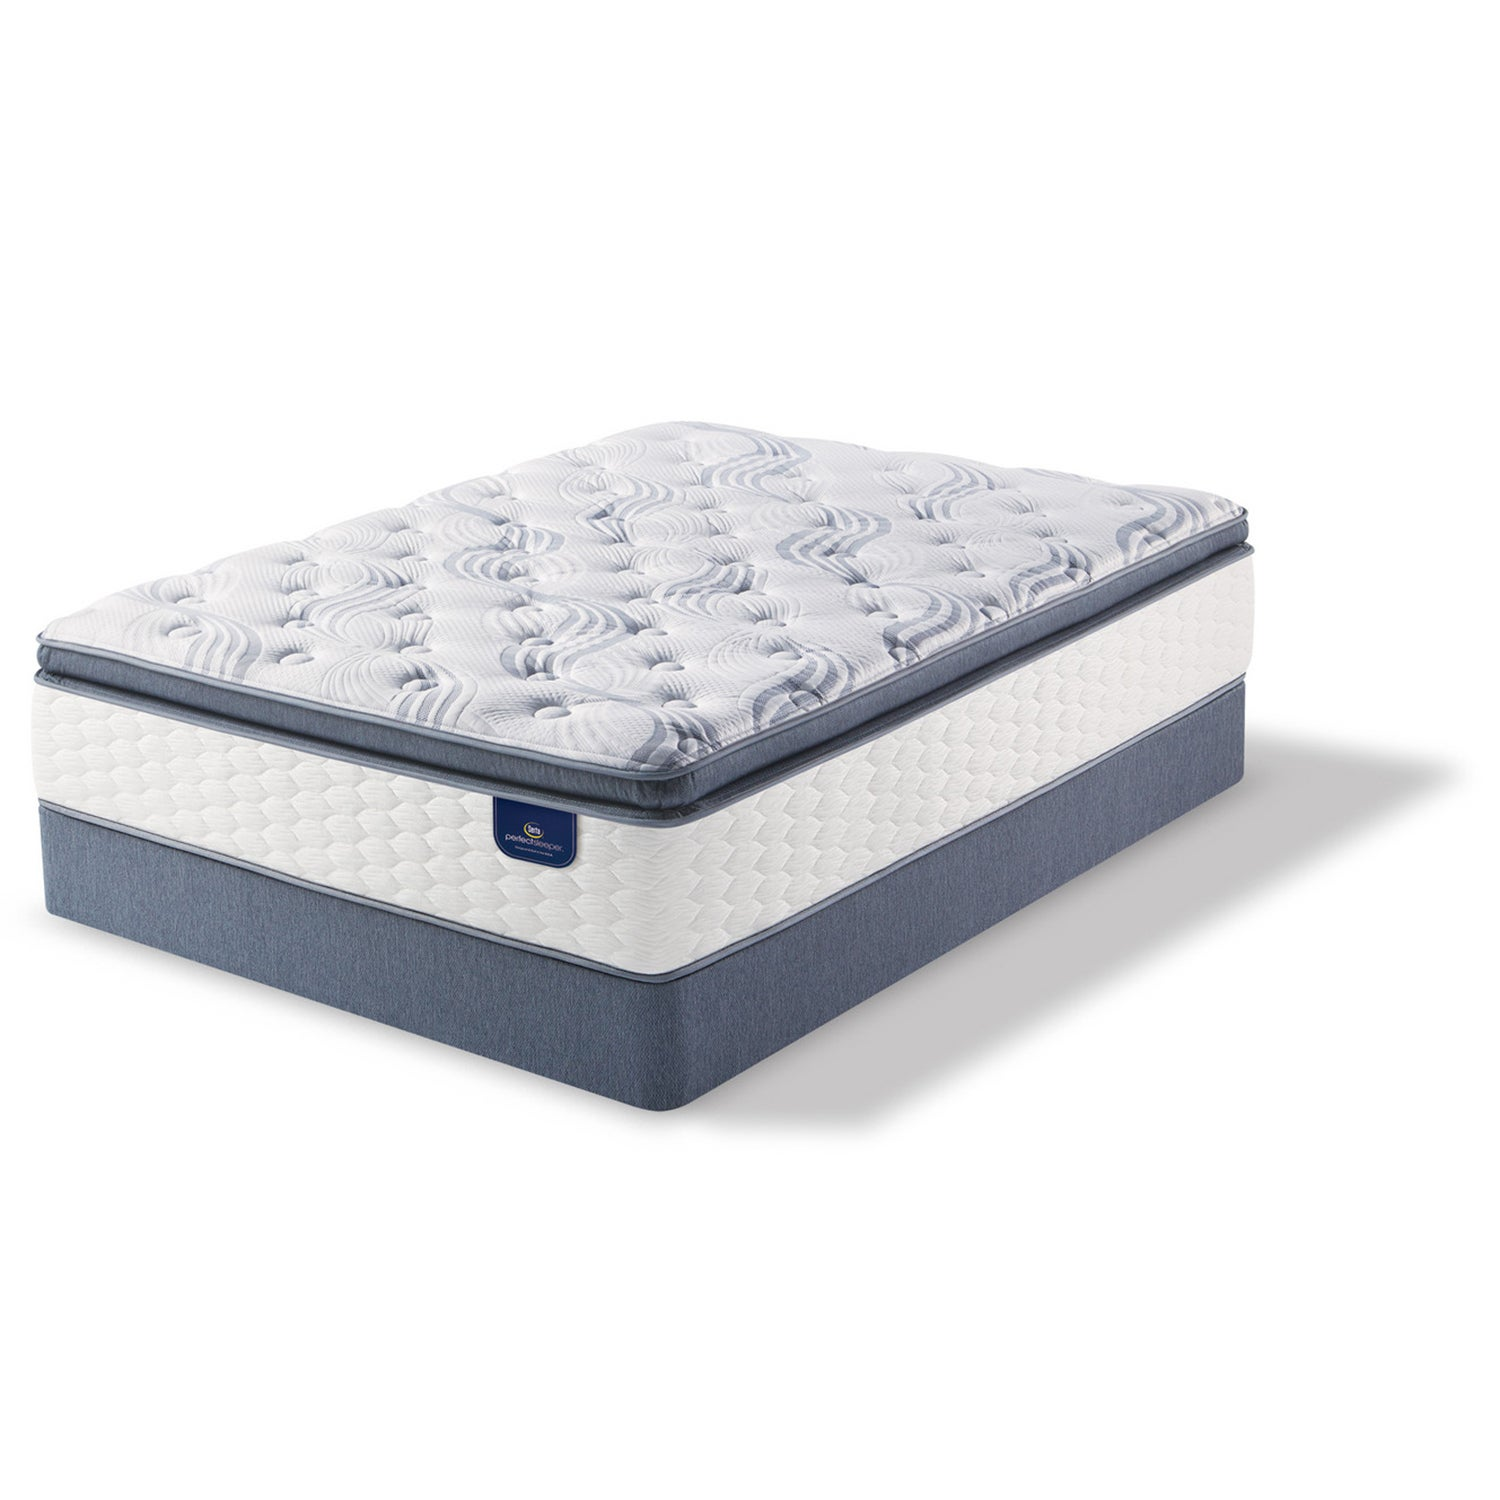 beautyrest superblackbird info size p single king queen topper canada mattress pillow top cover